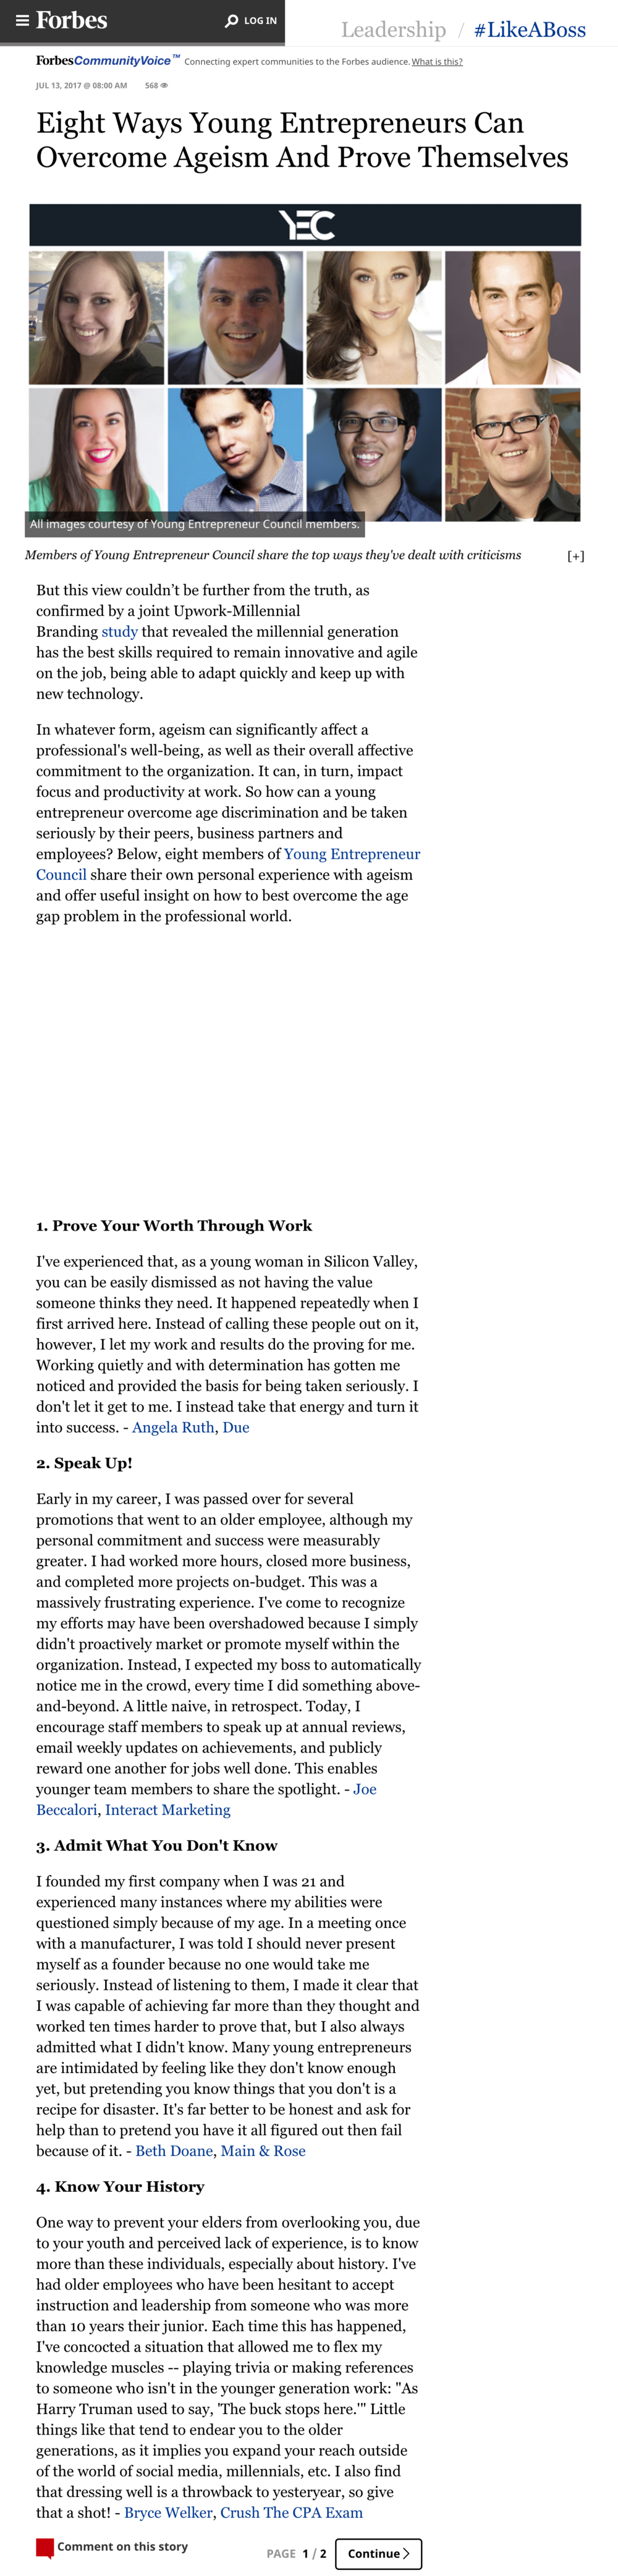 screencapture-forbes-sites-yec-2017-07-13-eight-ways-young-entrepreneurs-can-overcome-ageism-and-prove-themselves-1501556852228.png